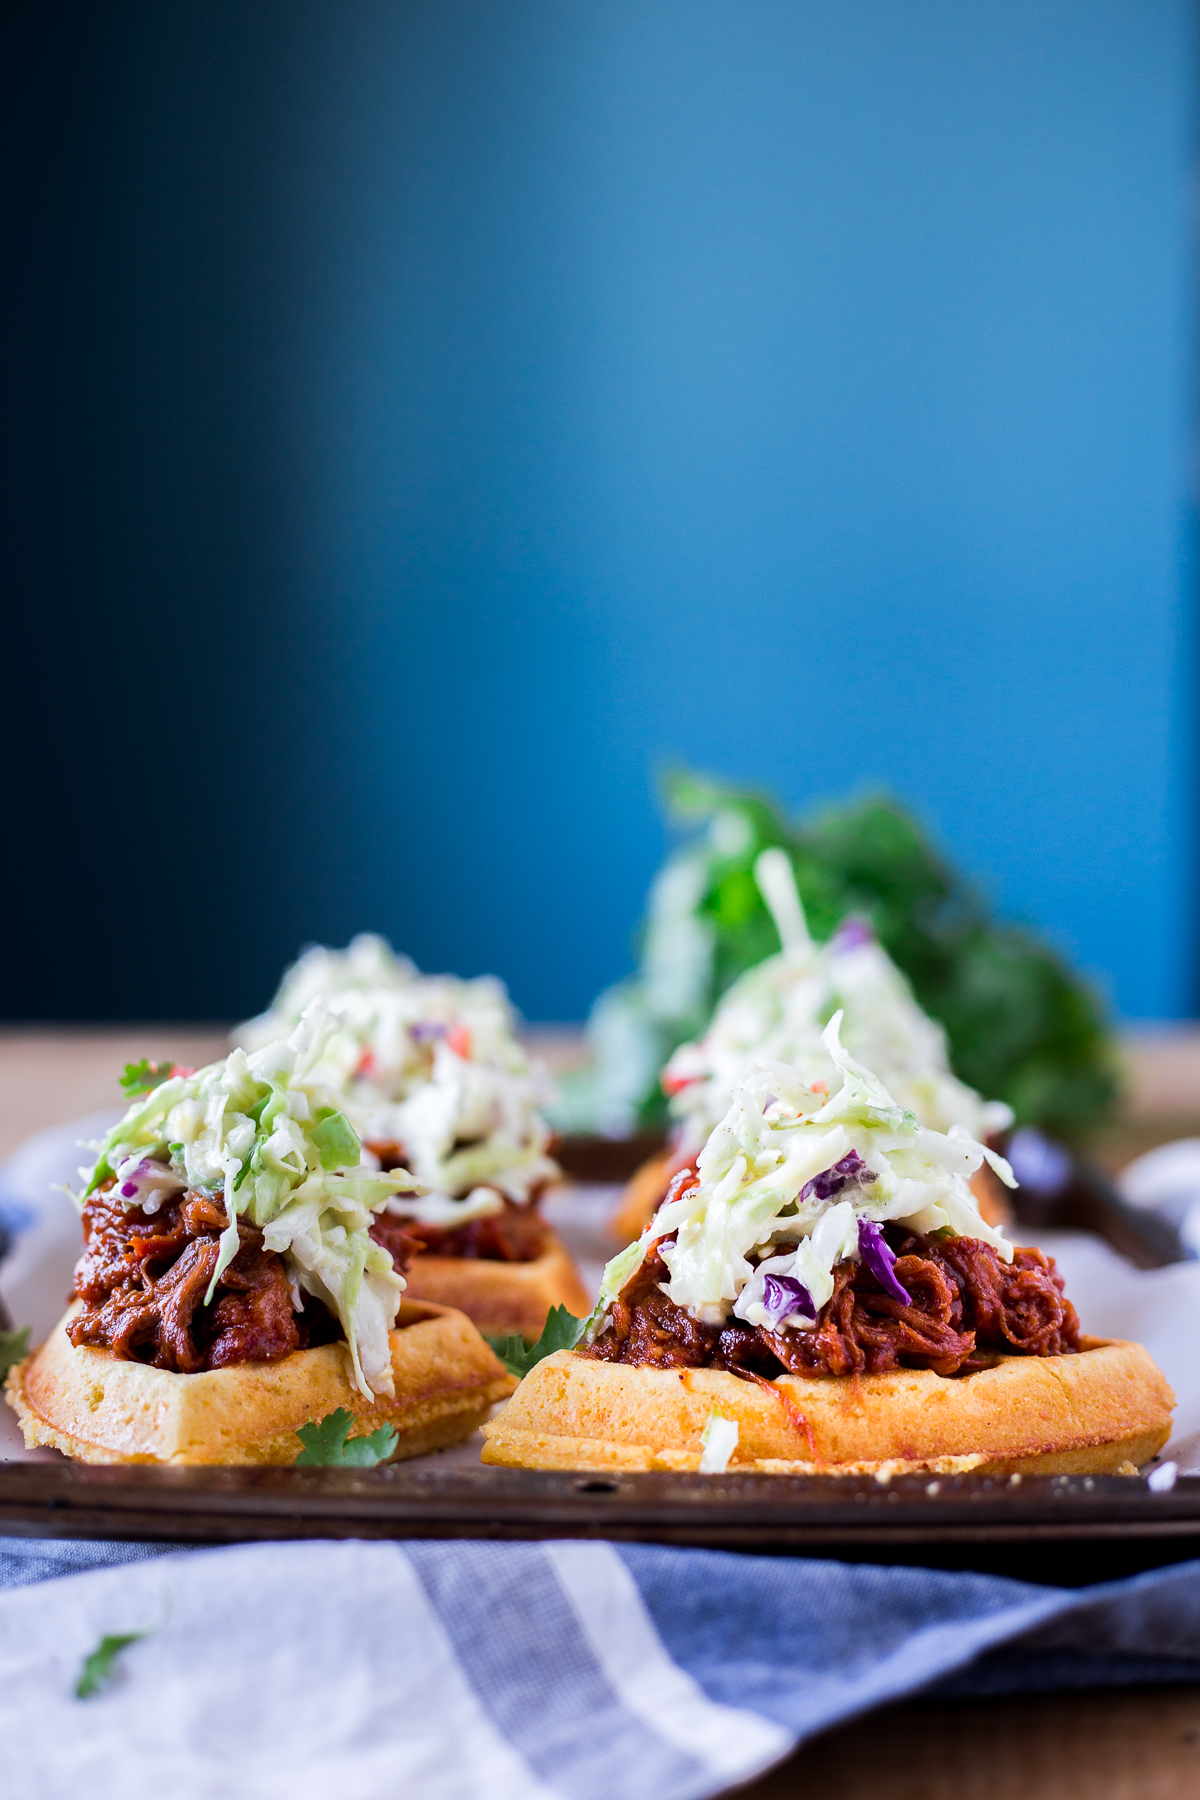 The king of savory waffle recipes, these Sweet & Smoky Pulled Pork Cornbread Waffle Sliders will leave you wanting more! Perfect as an appetizer, or for dinner! | asimplepantry.com